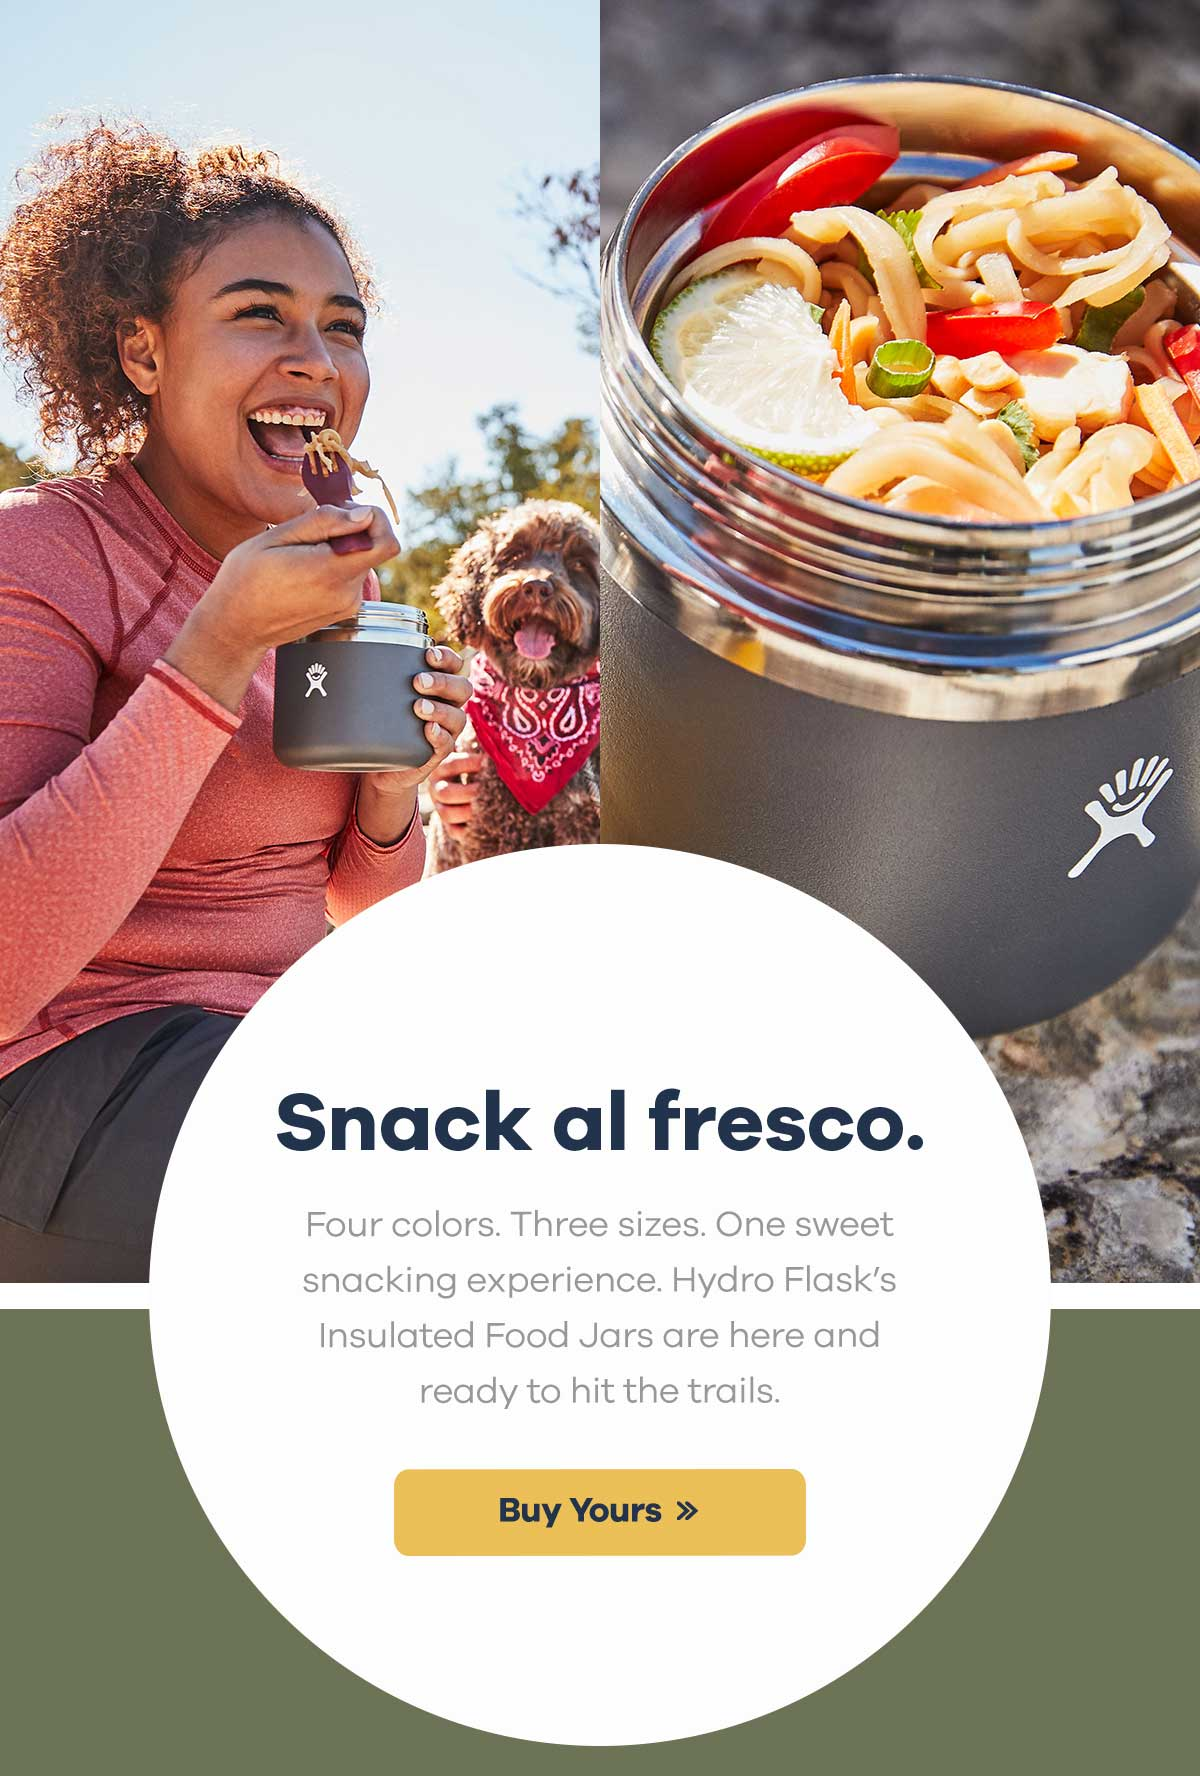 Snack al fresco. | Four colors. Three sizes. One sweet snacking experience. Hydro Flask's Insulated Food Jars are here and ready to hit the trails. | Buy Yours